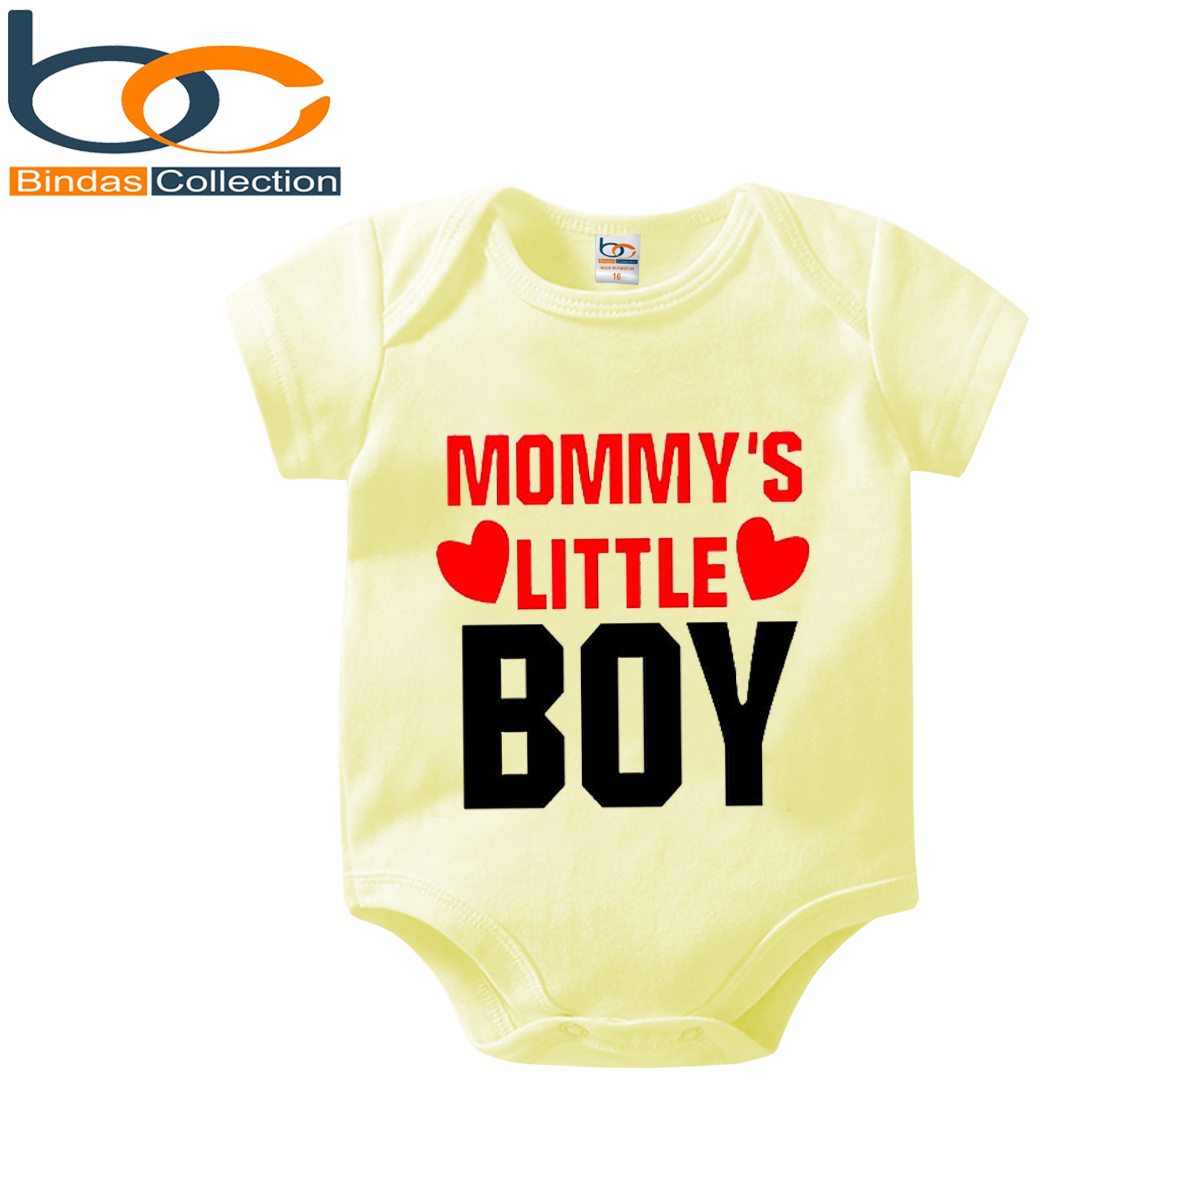 Bindas Collection Summer Trendy Printed Romper For Babies